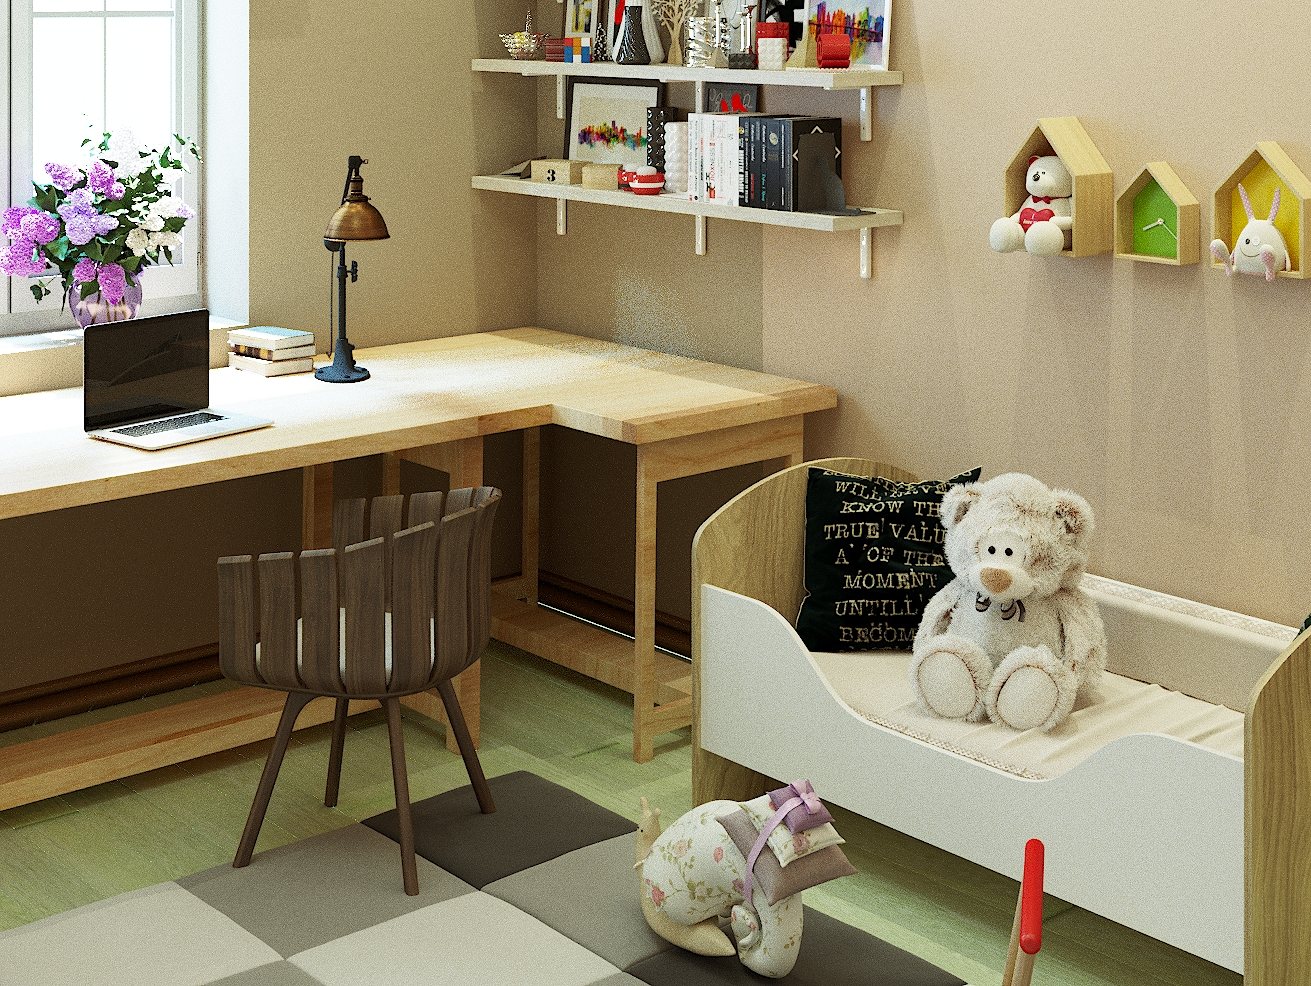 Children's for two girls 12 and 2 years. in 3d max corona render image